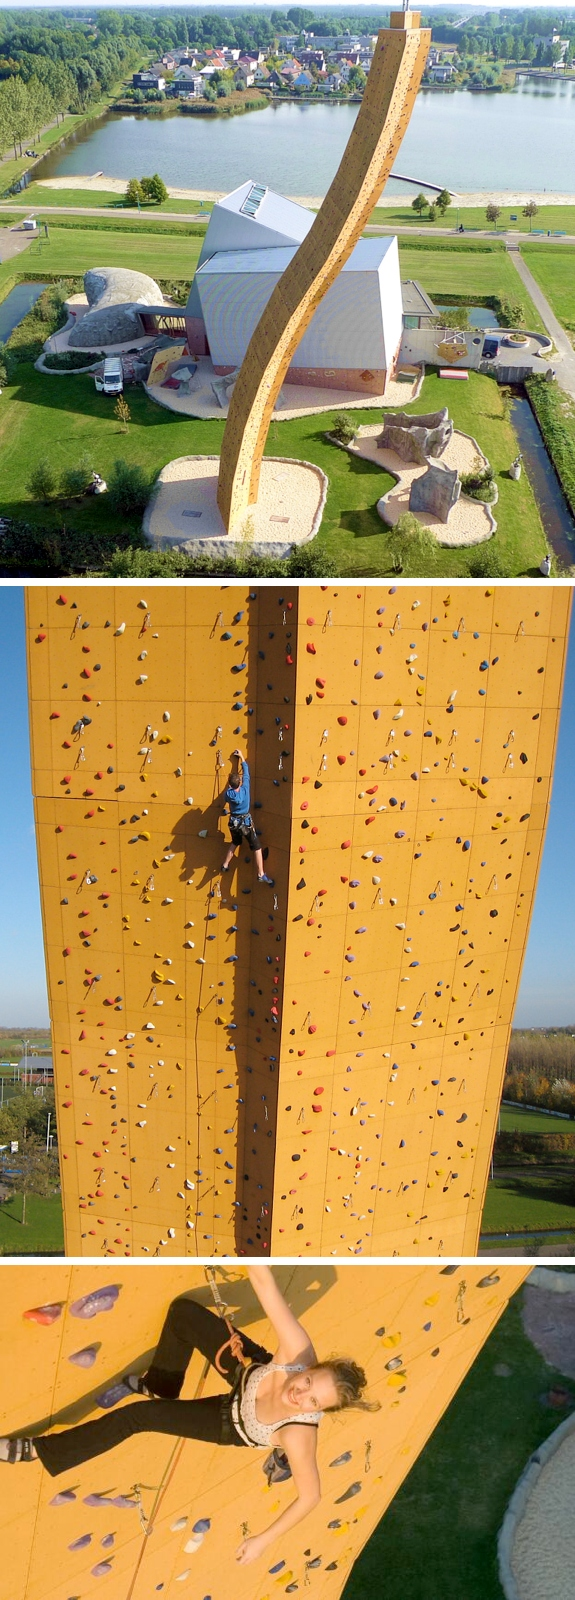 holland worlds highest climbing wall The World's Tallest Climbing Wall